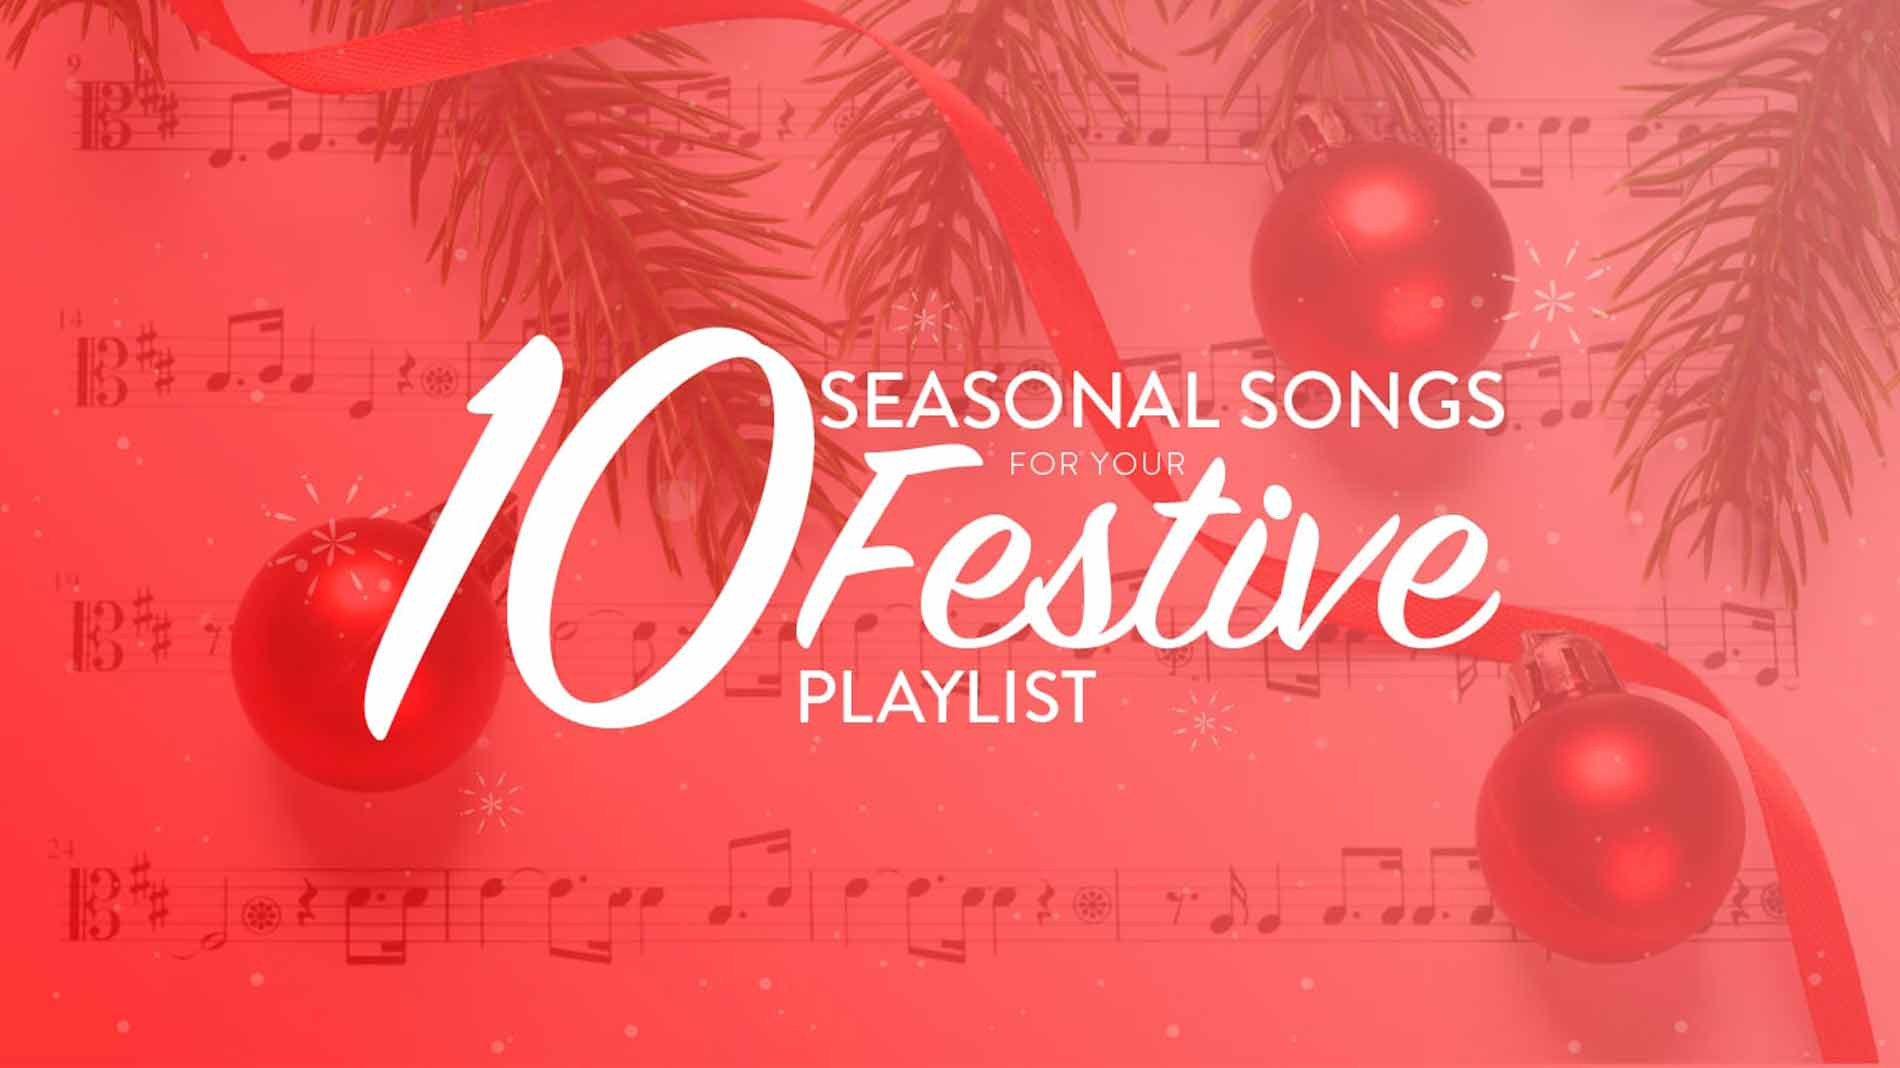 10 Christmas songs on red background.